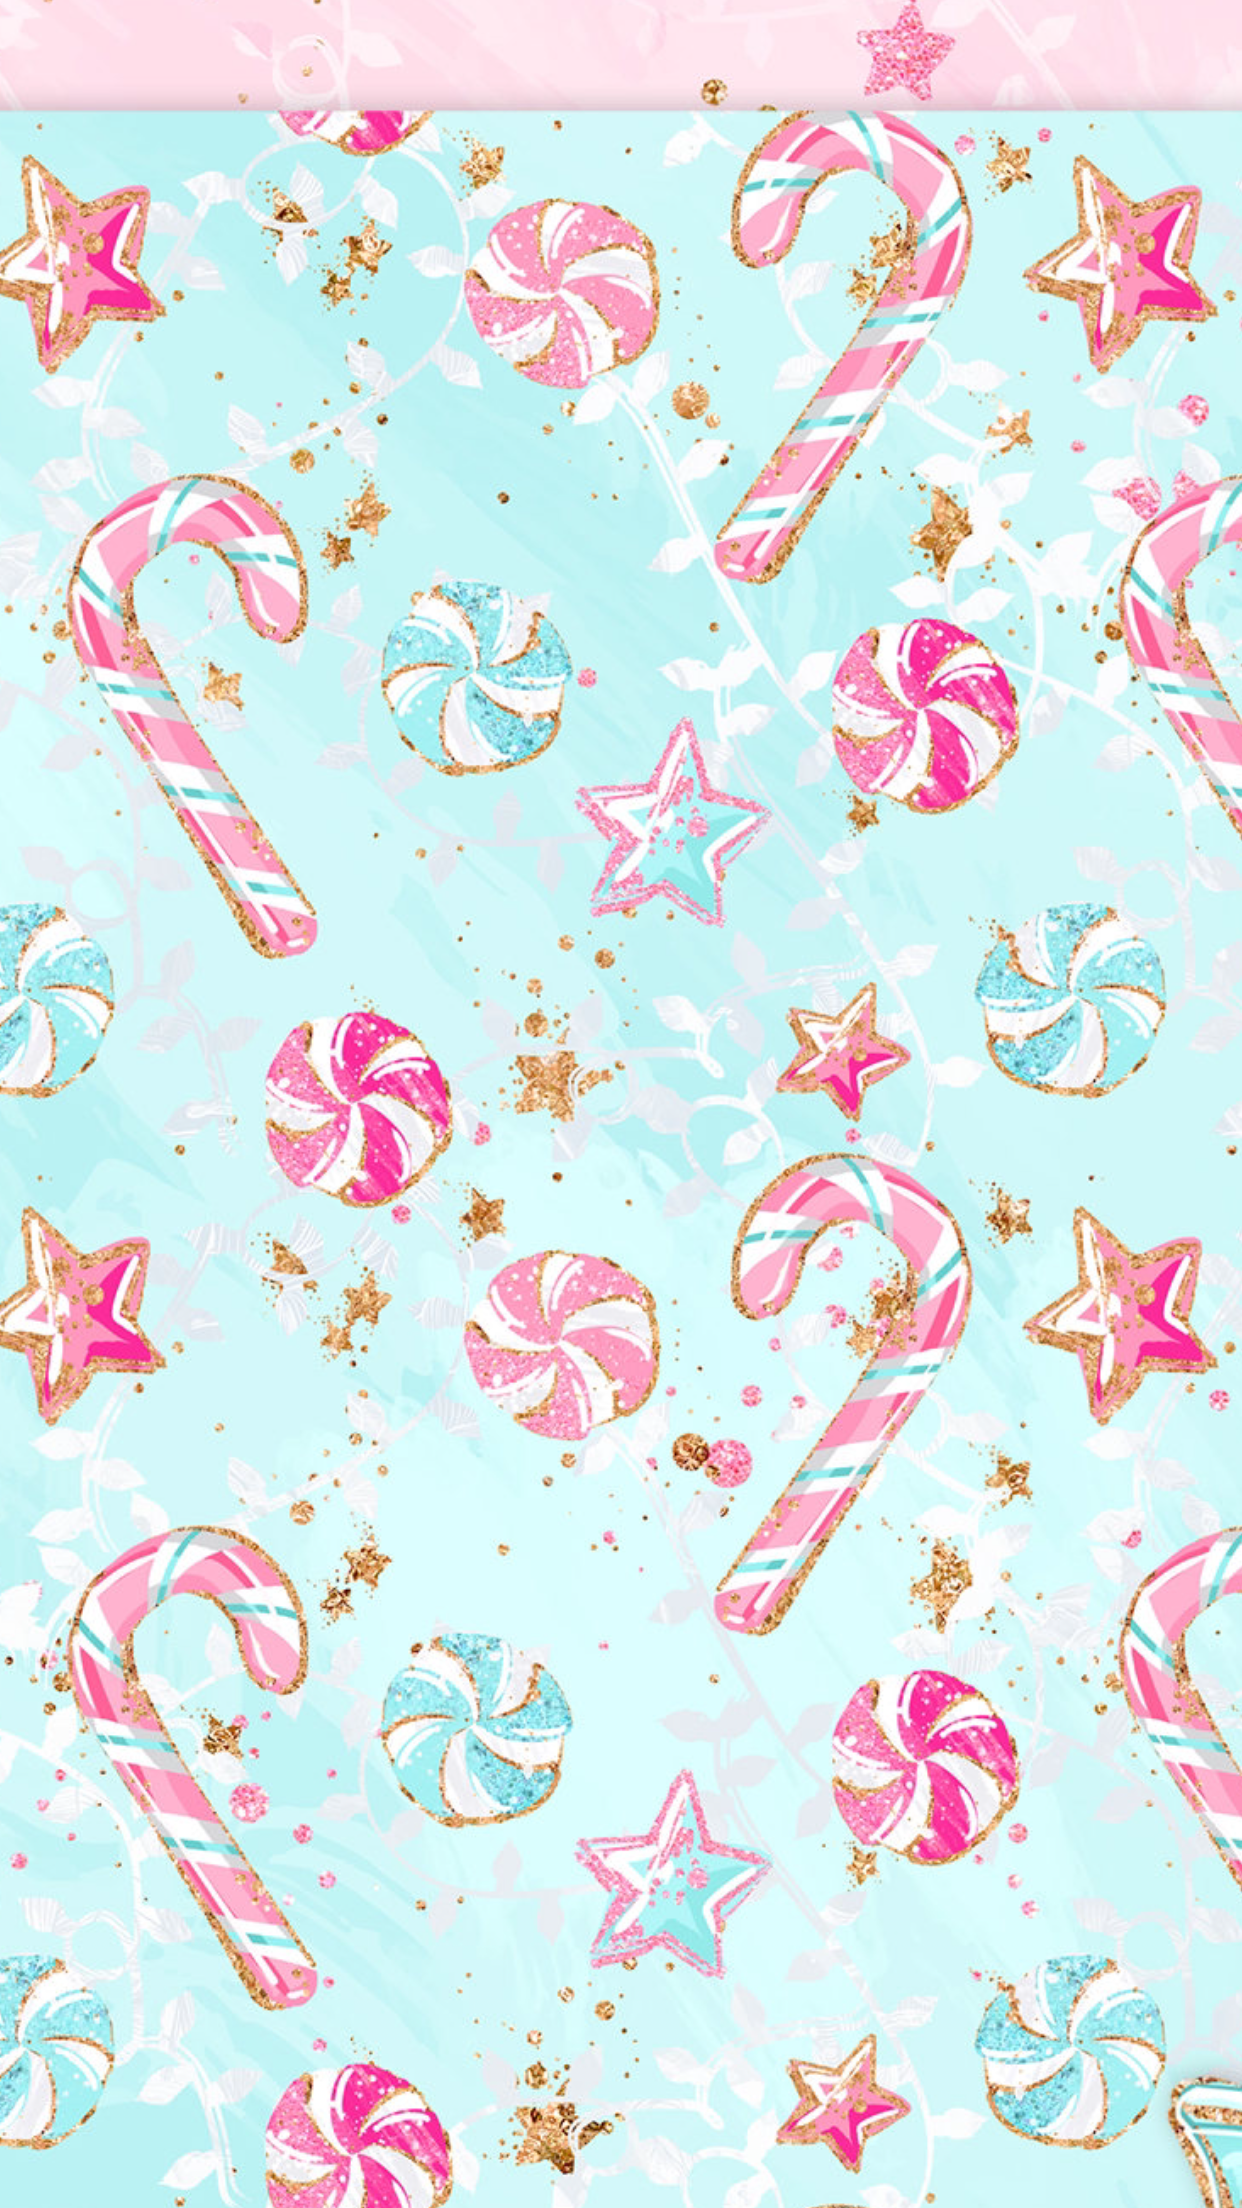 Christmas Candy Cane Mints Stars Wallpaper Iphone Christmas Christmas Wallpaper Christmas Wallpaper Backgrounds